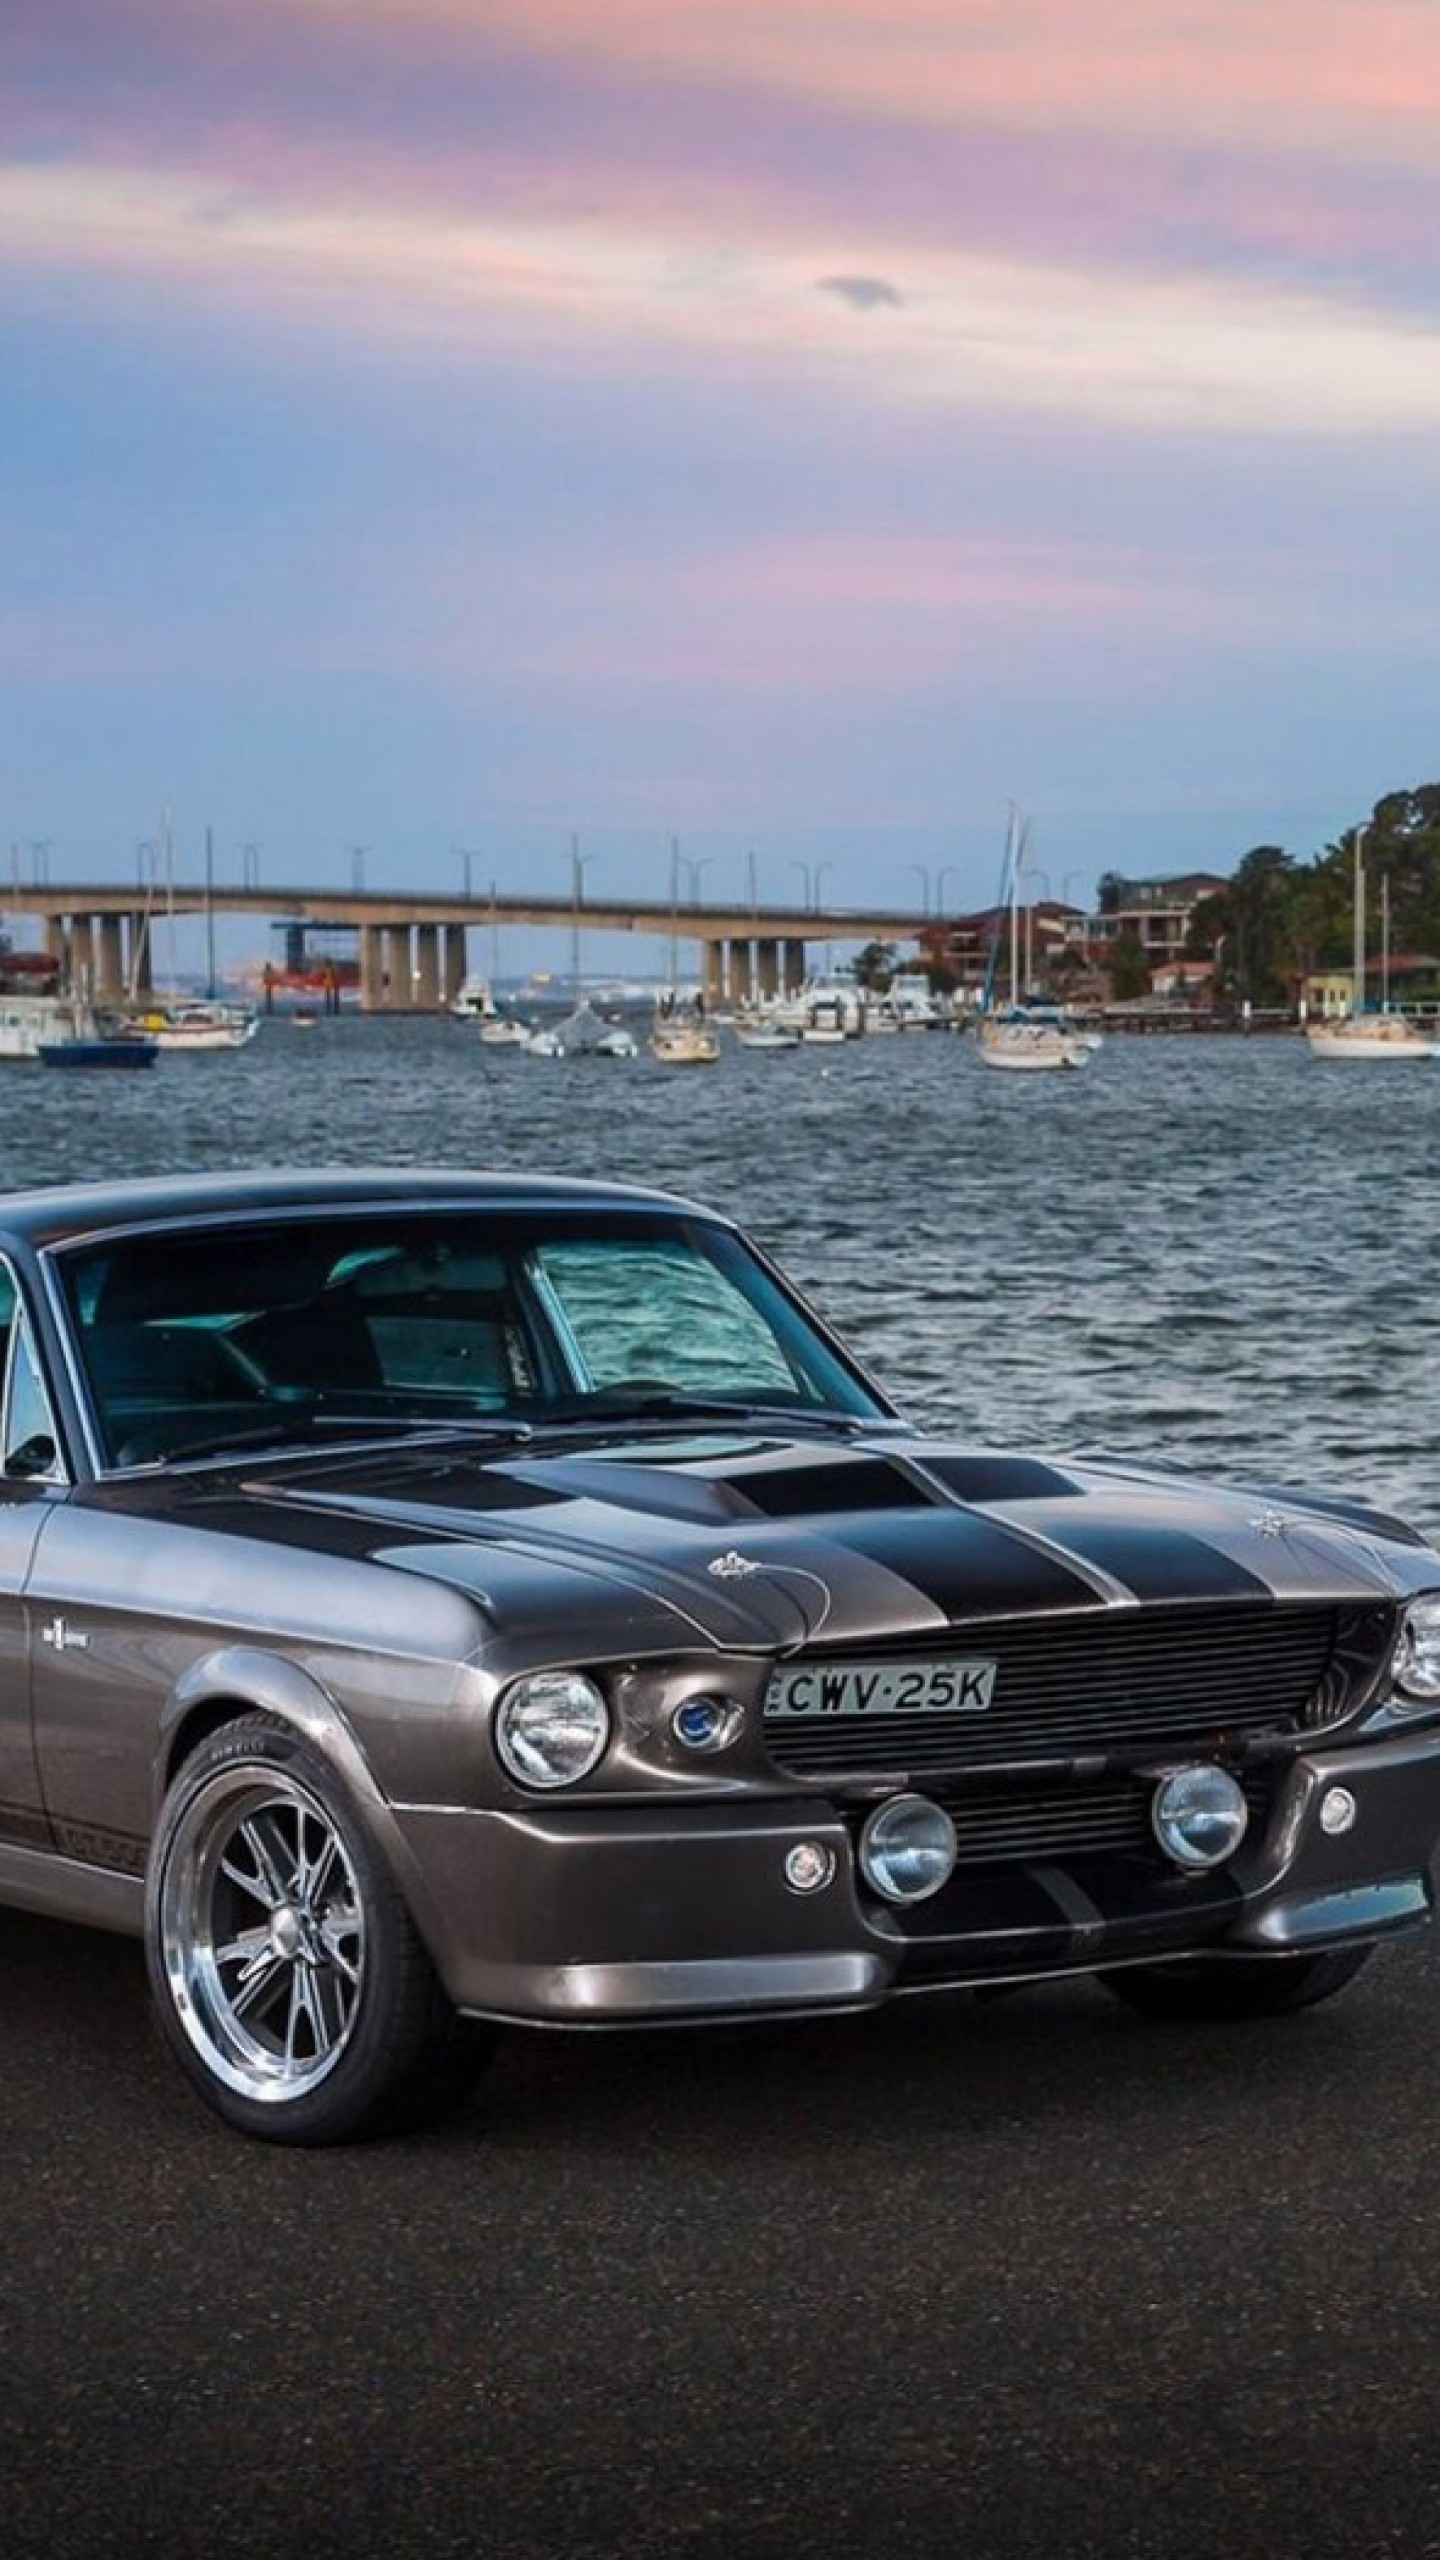 1440x2560 preview wallpaper ford mustang silver sea 1440x2560